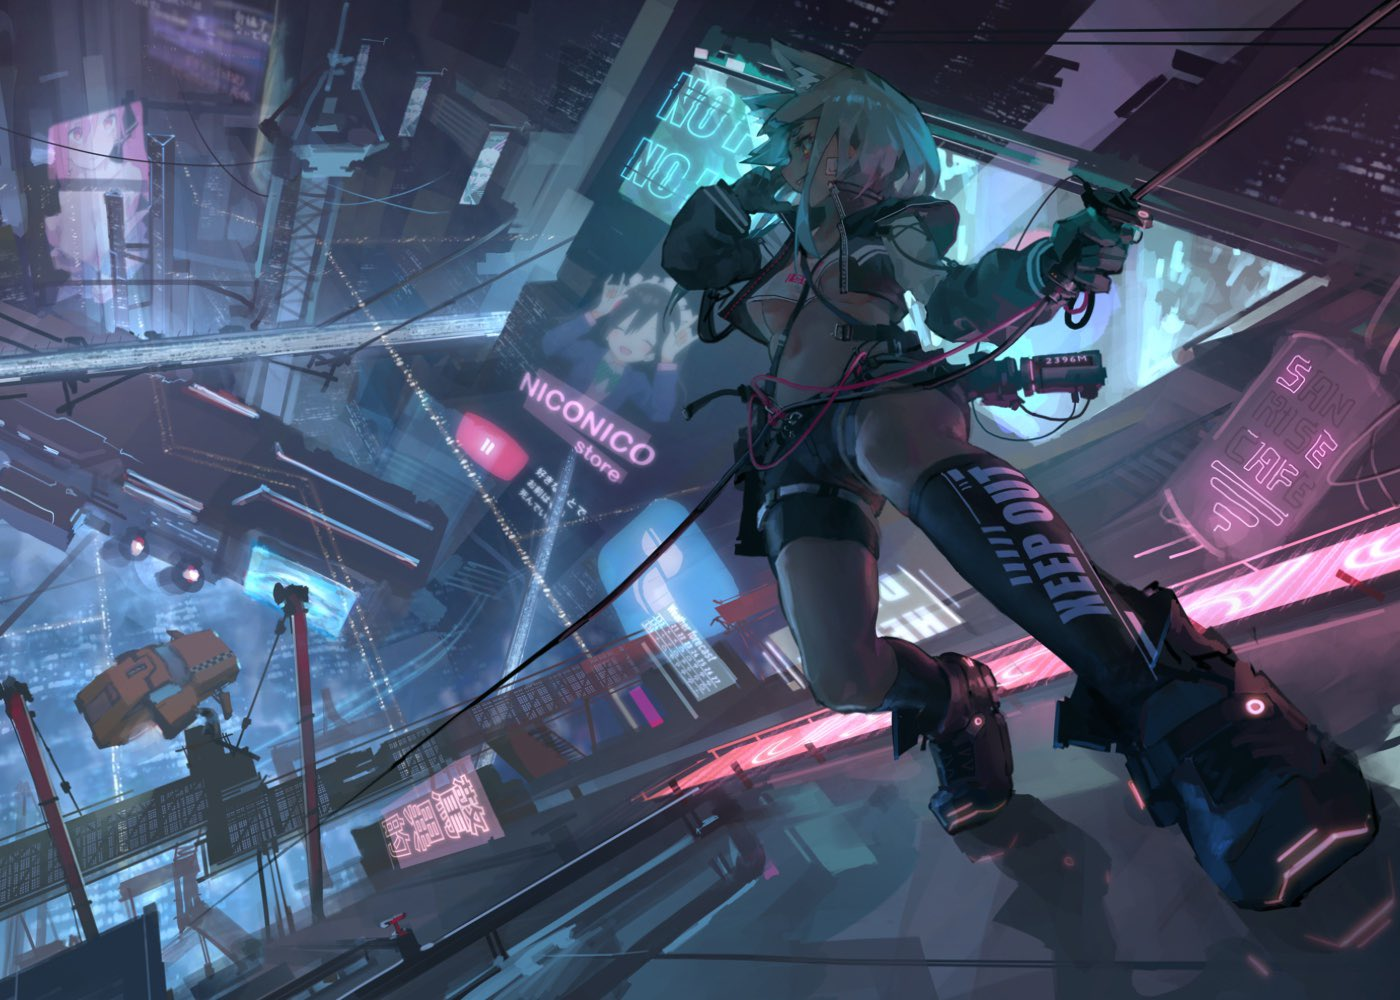 1girl aamond aircraft airship animal_ear_fluff animal_ears bandage_on_face black_legwear boots breasts building cable cat_ears catwalk caution_tape city crane crop_top crop_top_overhang cropped_jacket full_body gloves jacket keep_out midriff navel nico_nico_nii night open_clothes open_jacket original outdoors rappelling rope science_fiction shorts sidelocks sign skyscraper taxi thigh-highs under_boob yazawa_nico